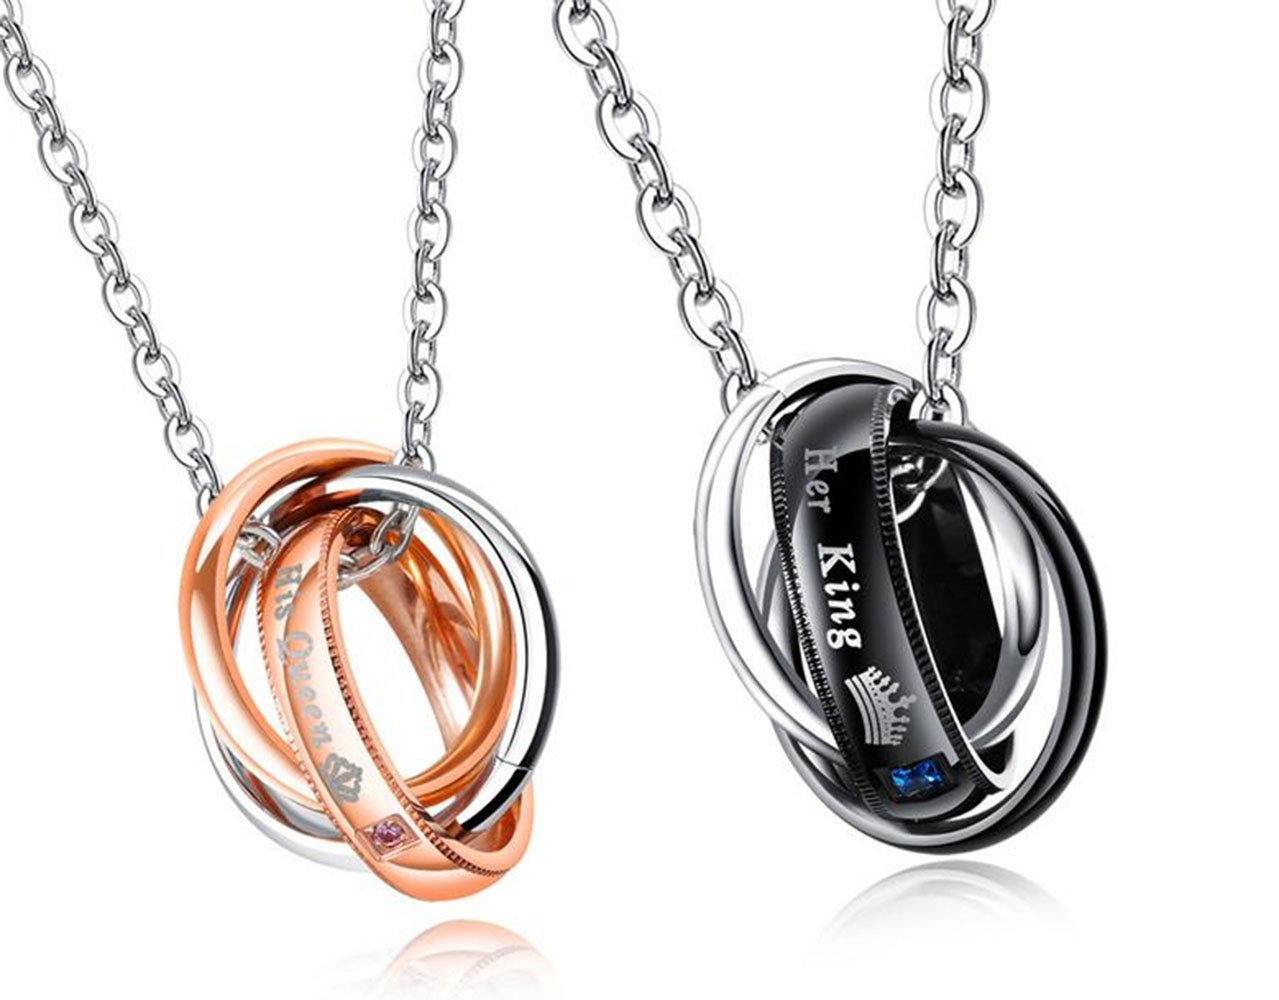 Feraco His Queen Her King Couples Necklace Set Engraved Crown Ring Pendants Stainless Steel Choker Necklaces